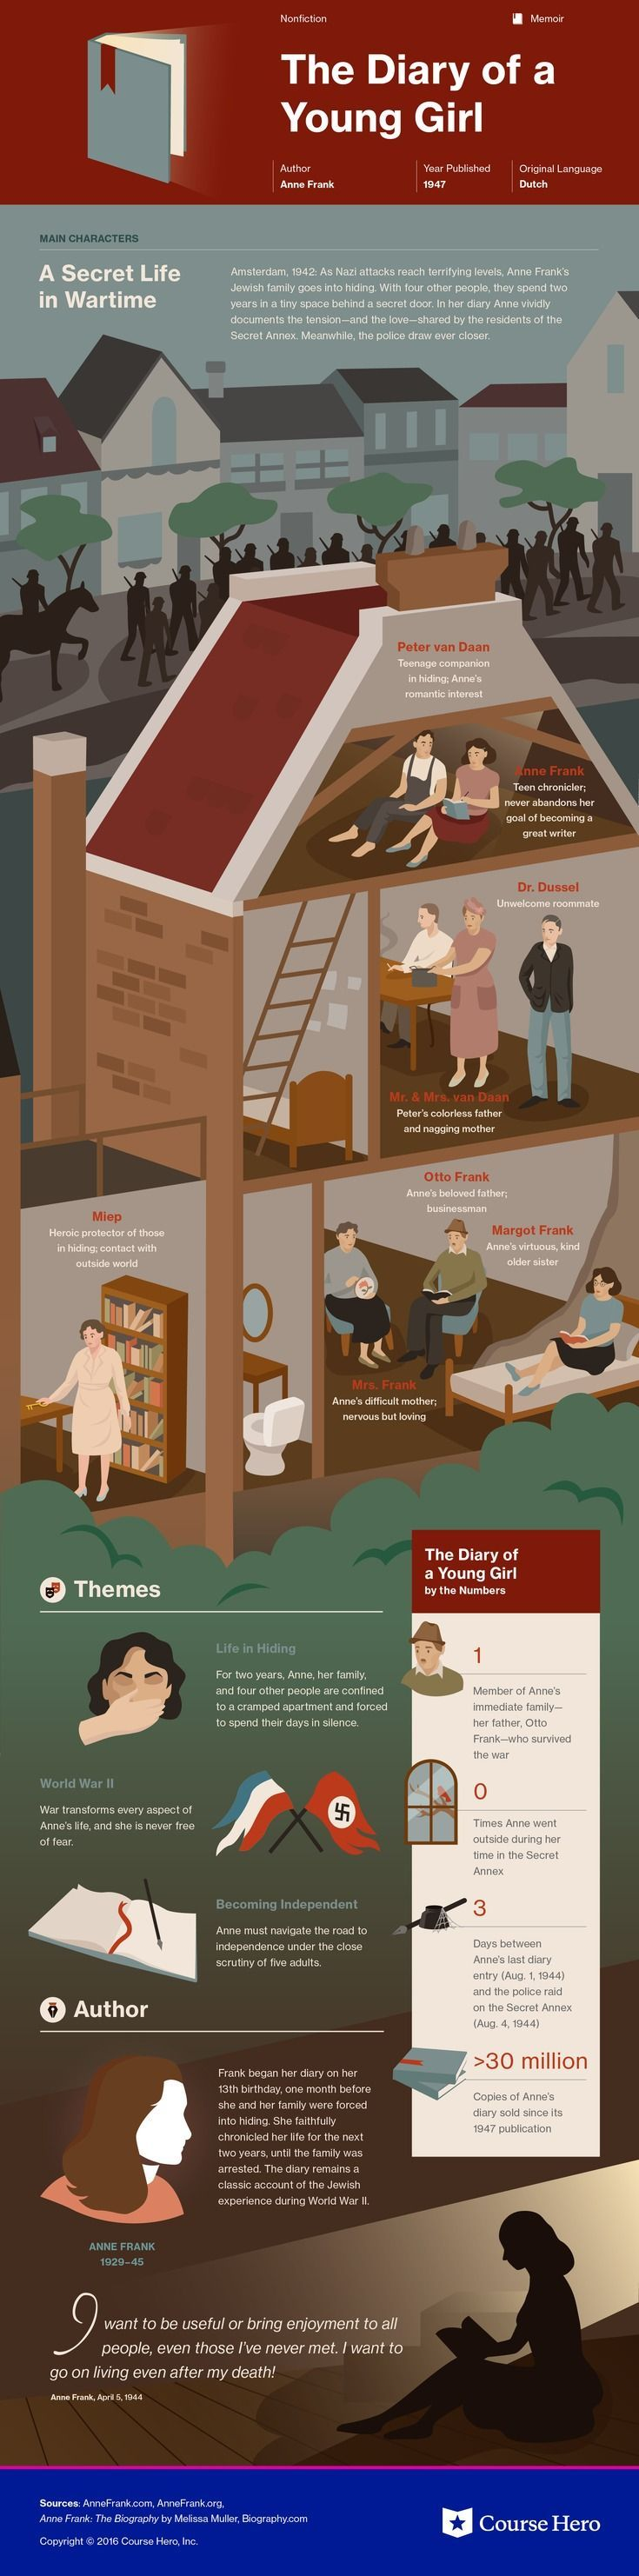 The Diary of a Young Girl Infographic   Course Hero